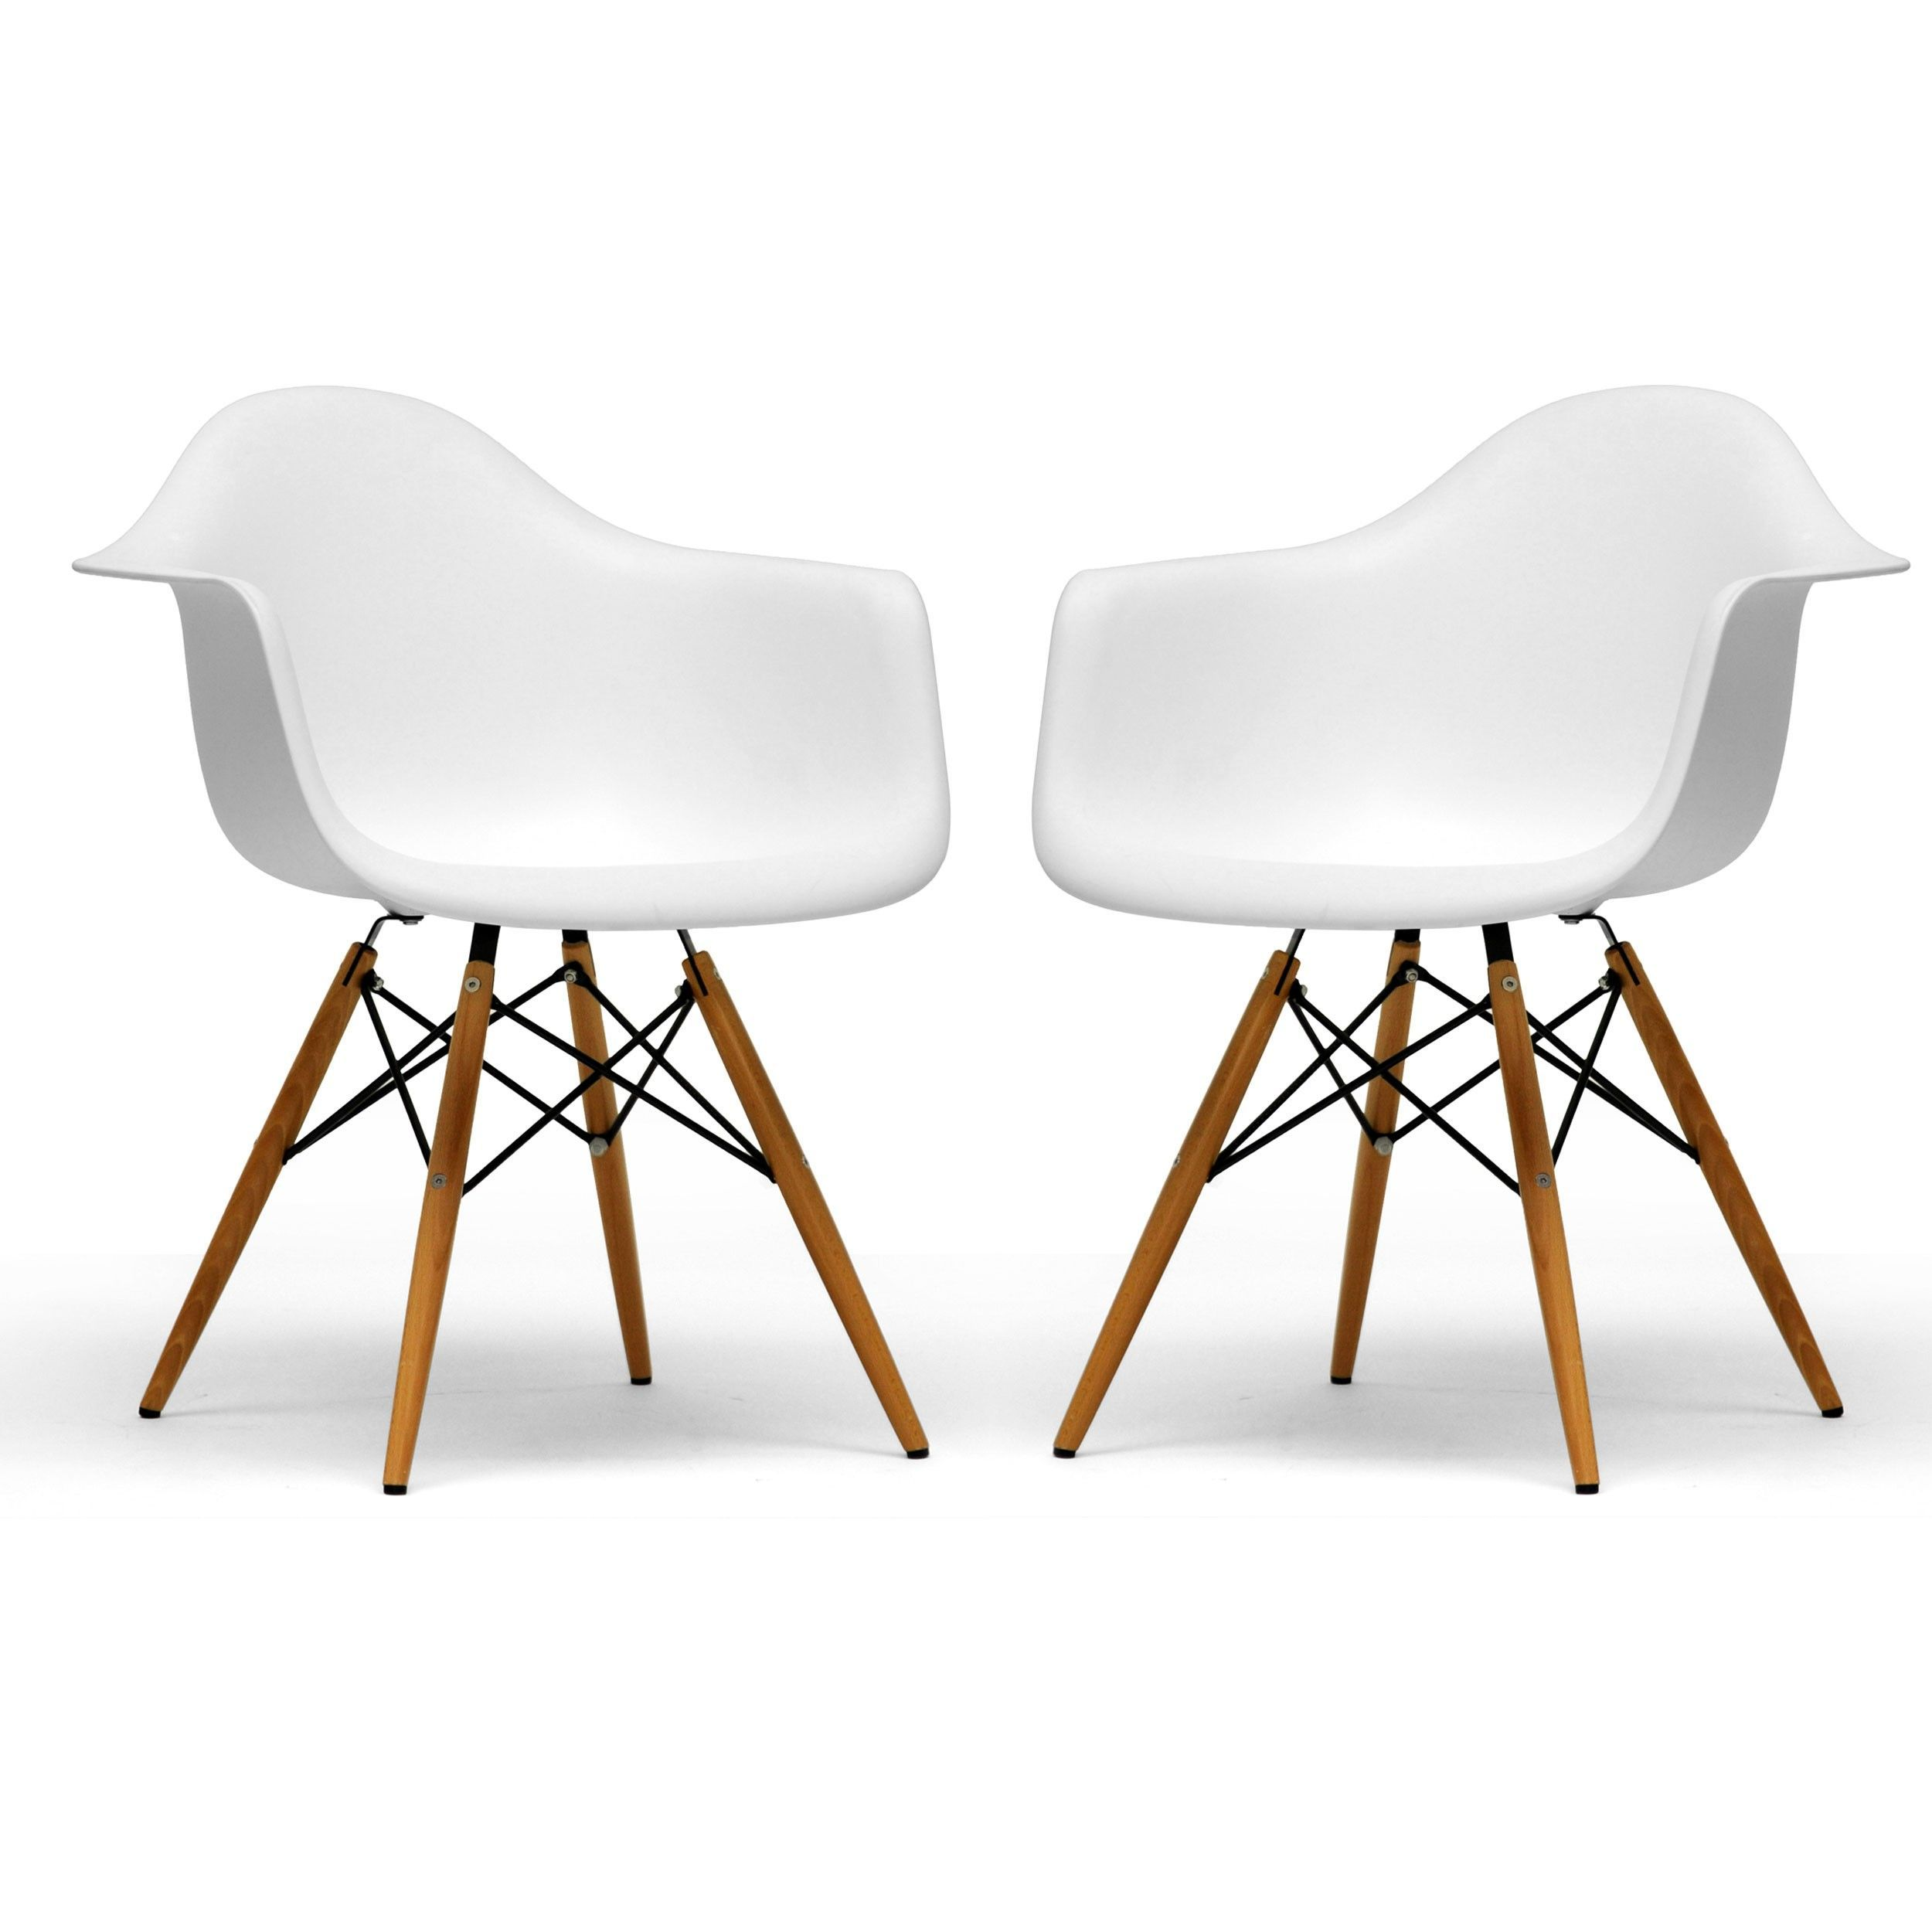 Etonnant ... White Accent Chairs Will Add A Classic Look To Any Living Space.  Ergonomically Shaped For Comfort, These White Molded Plastic Chairs Feature Wooden  Legs ...